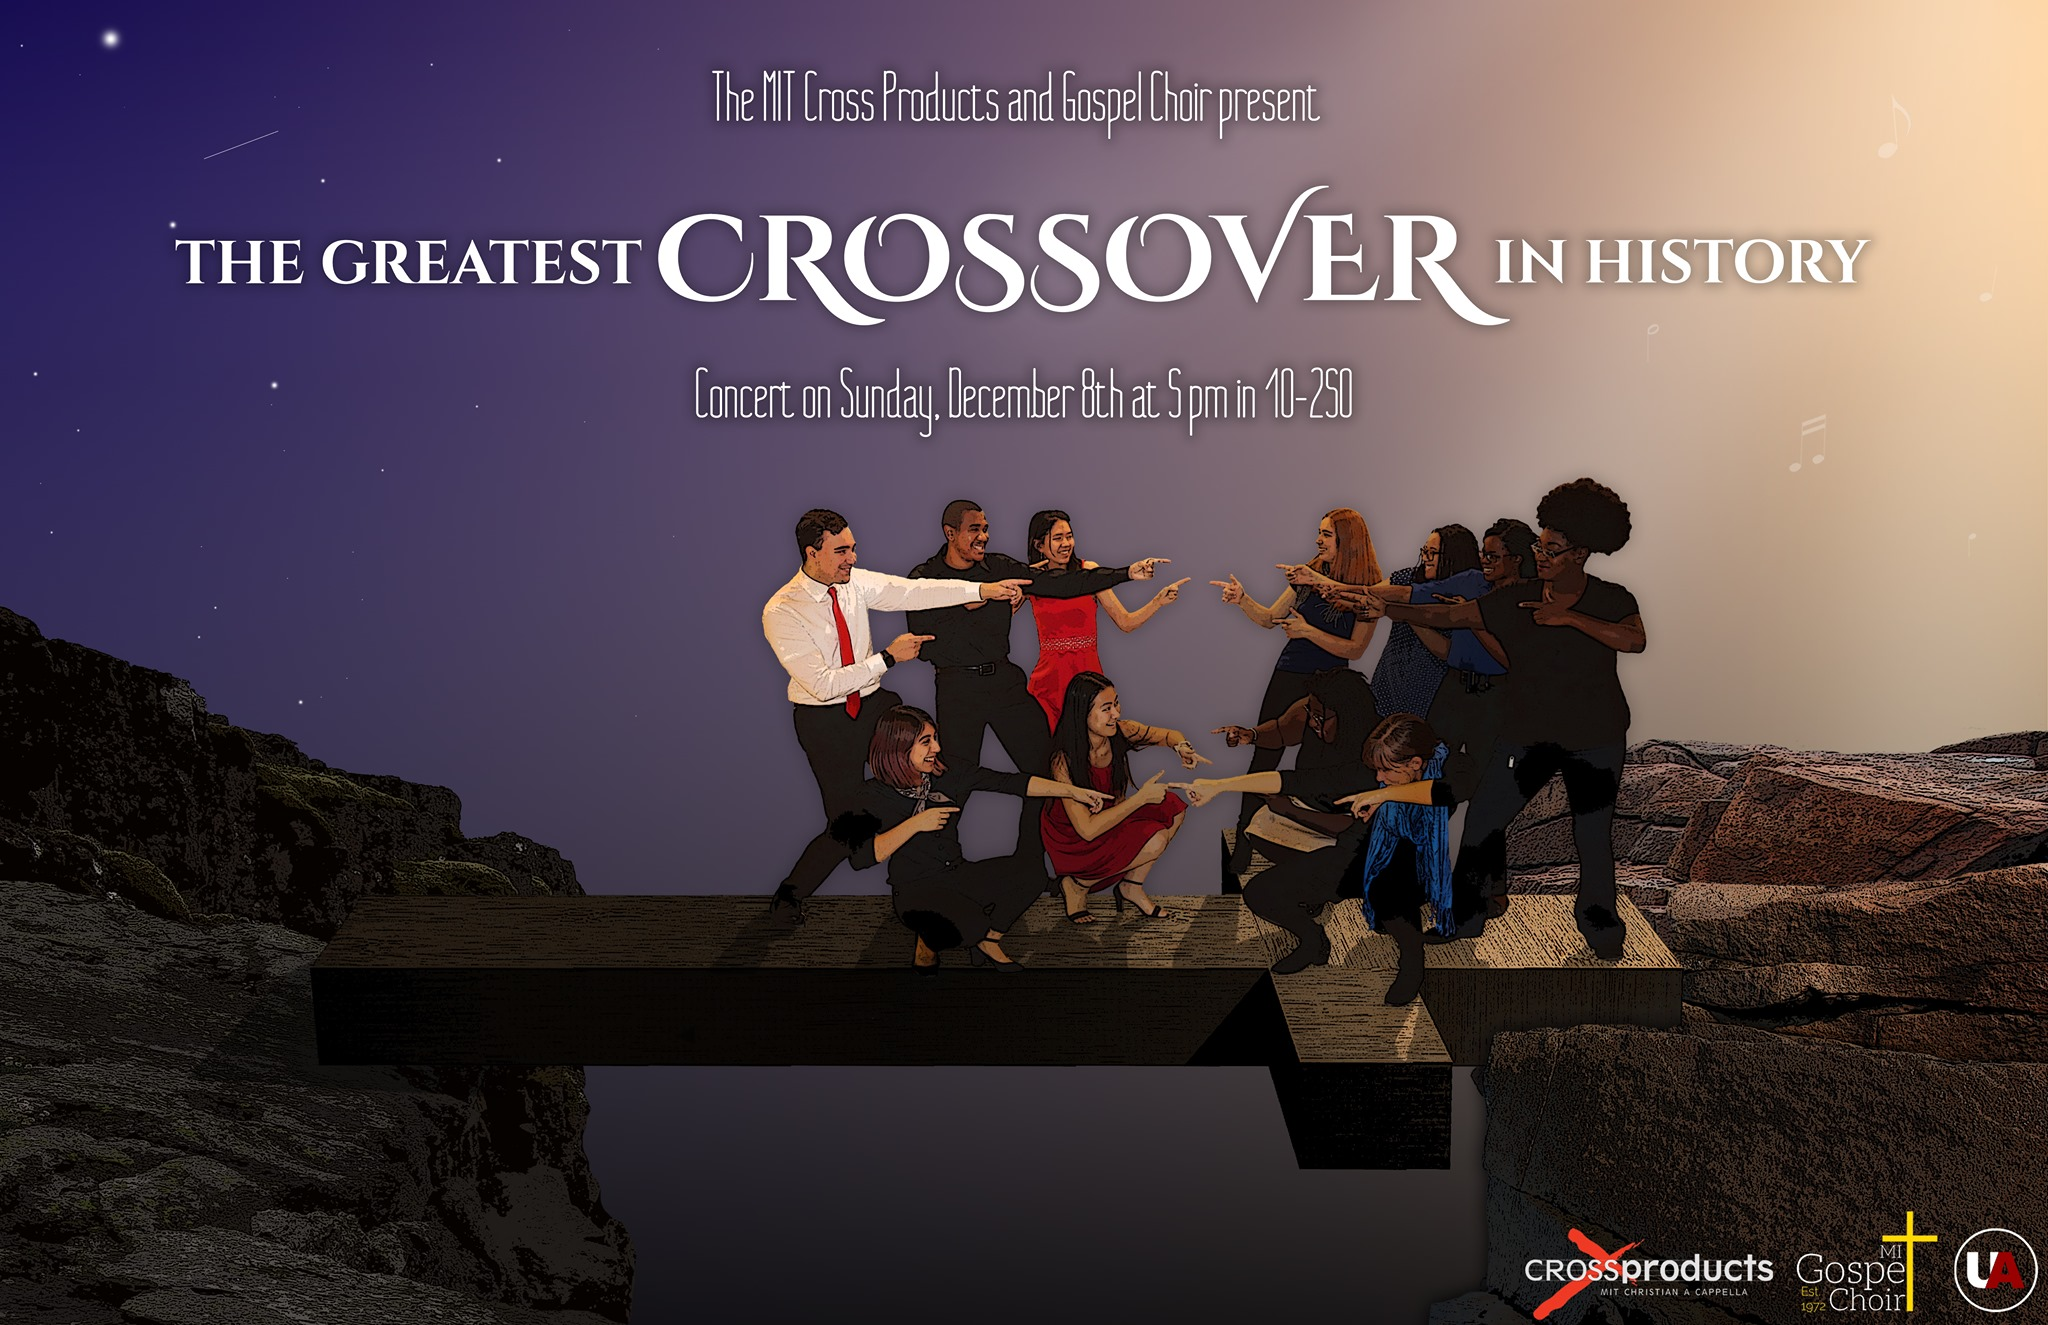 The MIT Cross Products and Gospel Choir present The Greatest Crossover In History concert on Sunday, December 8th at 5 p.m. in 10-250.